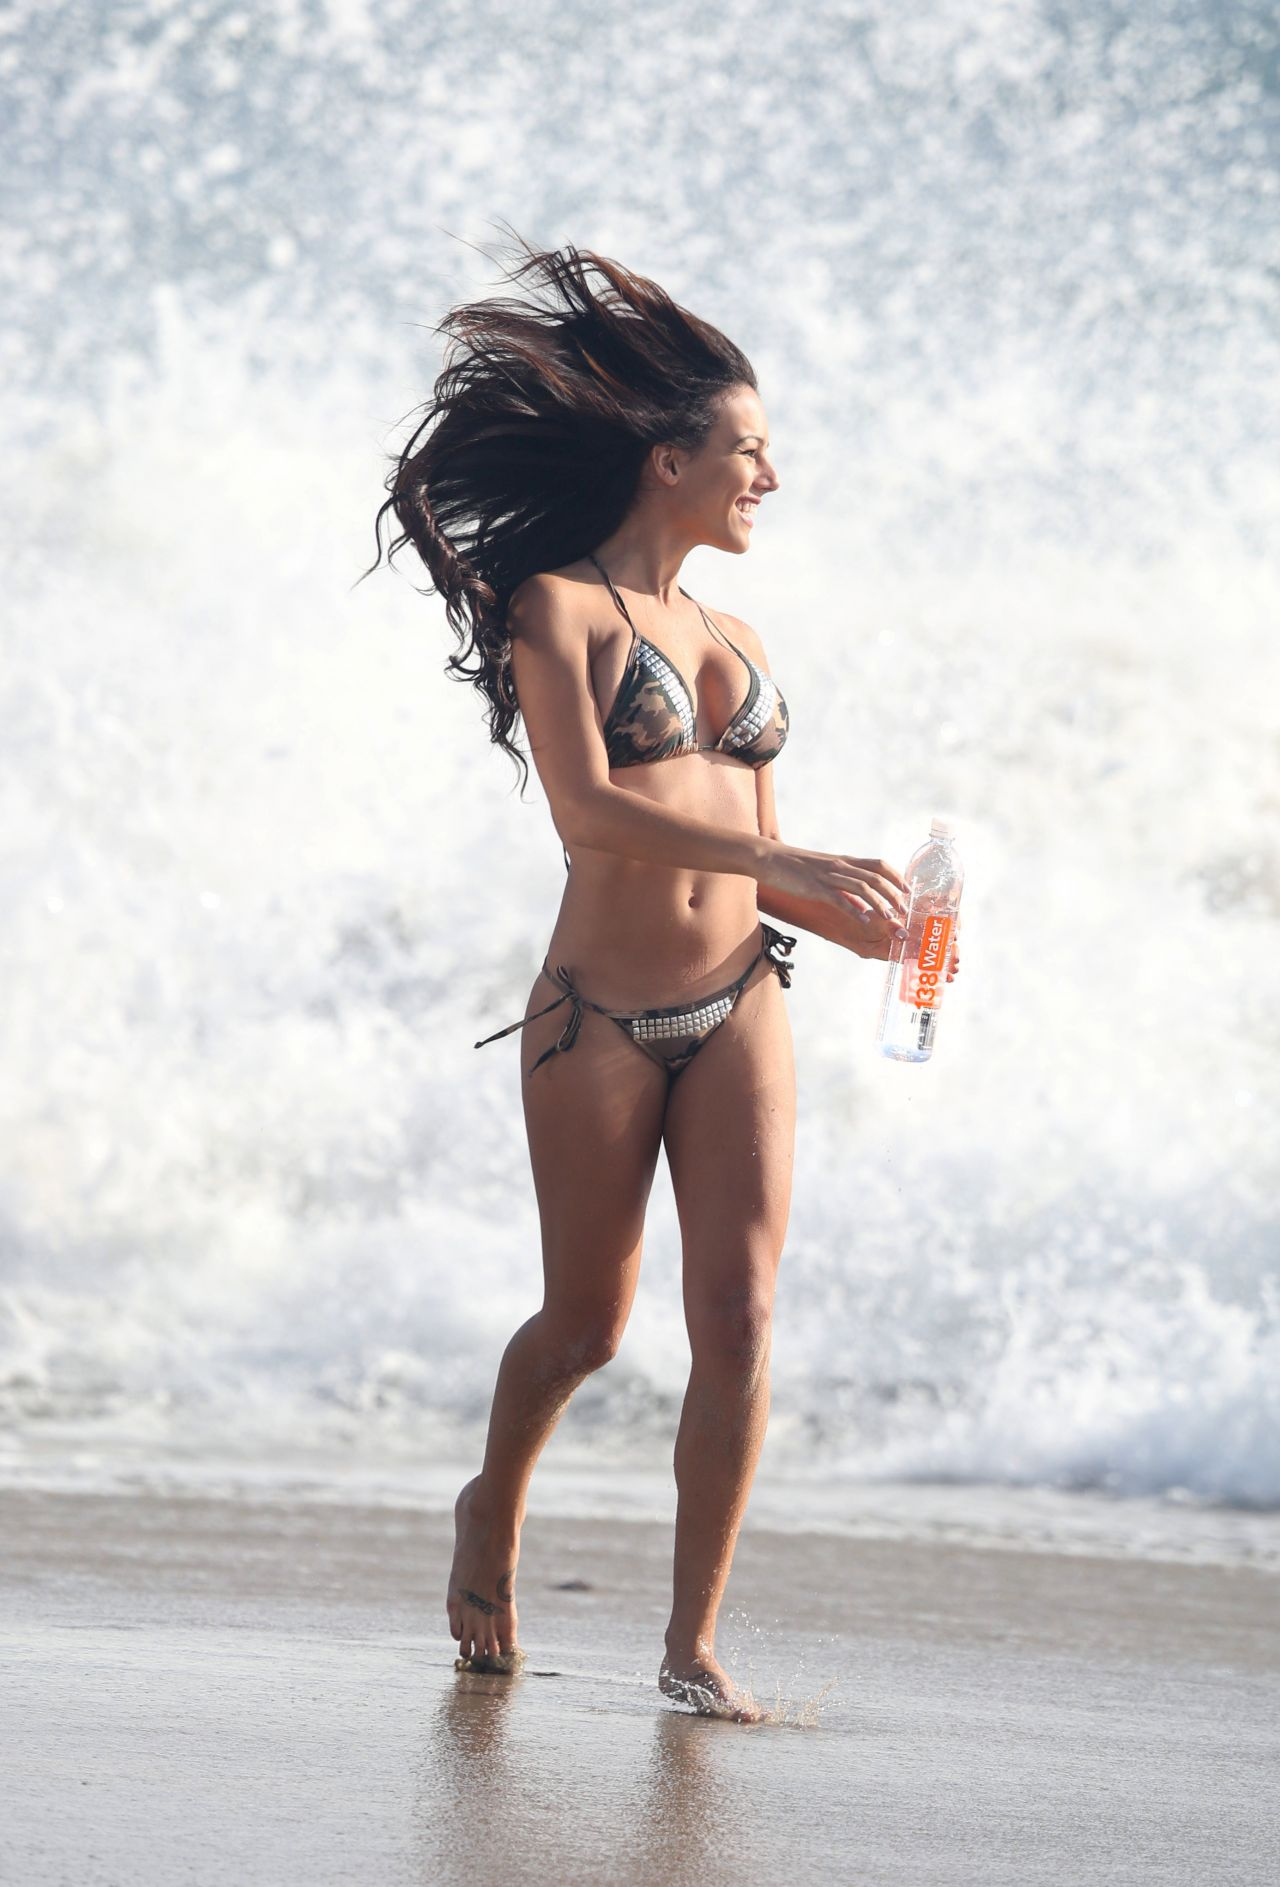 Katelynn Ansari in Bikini - Photoshoot for 138 Water- California, February 2014